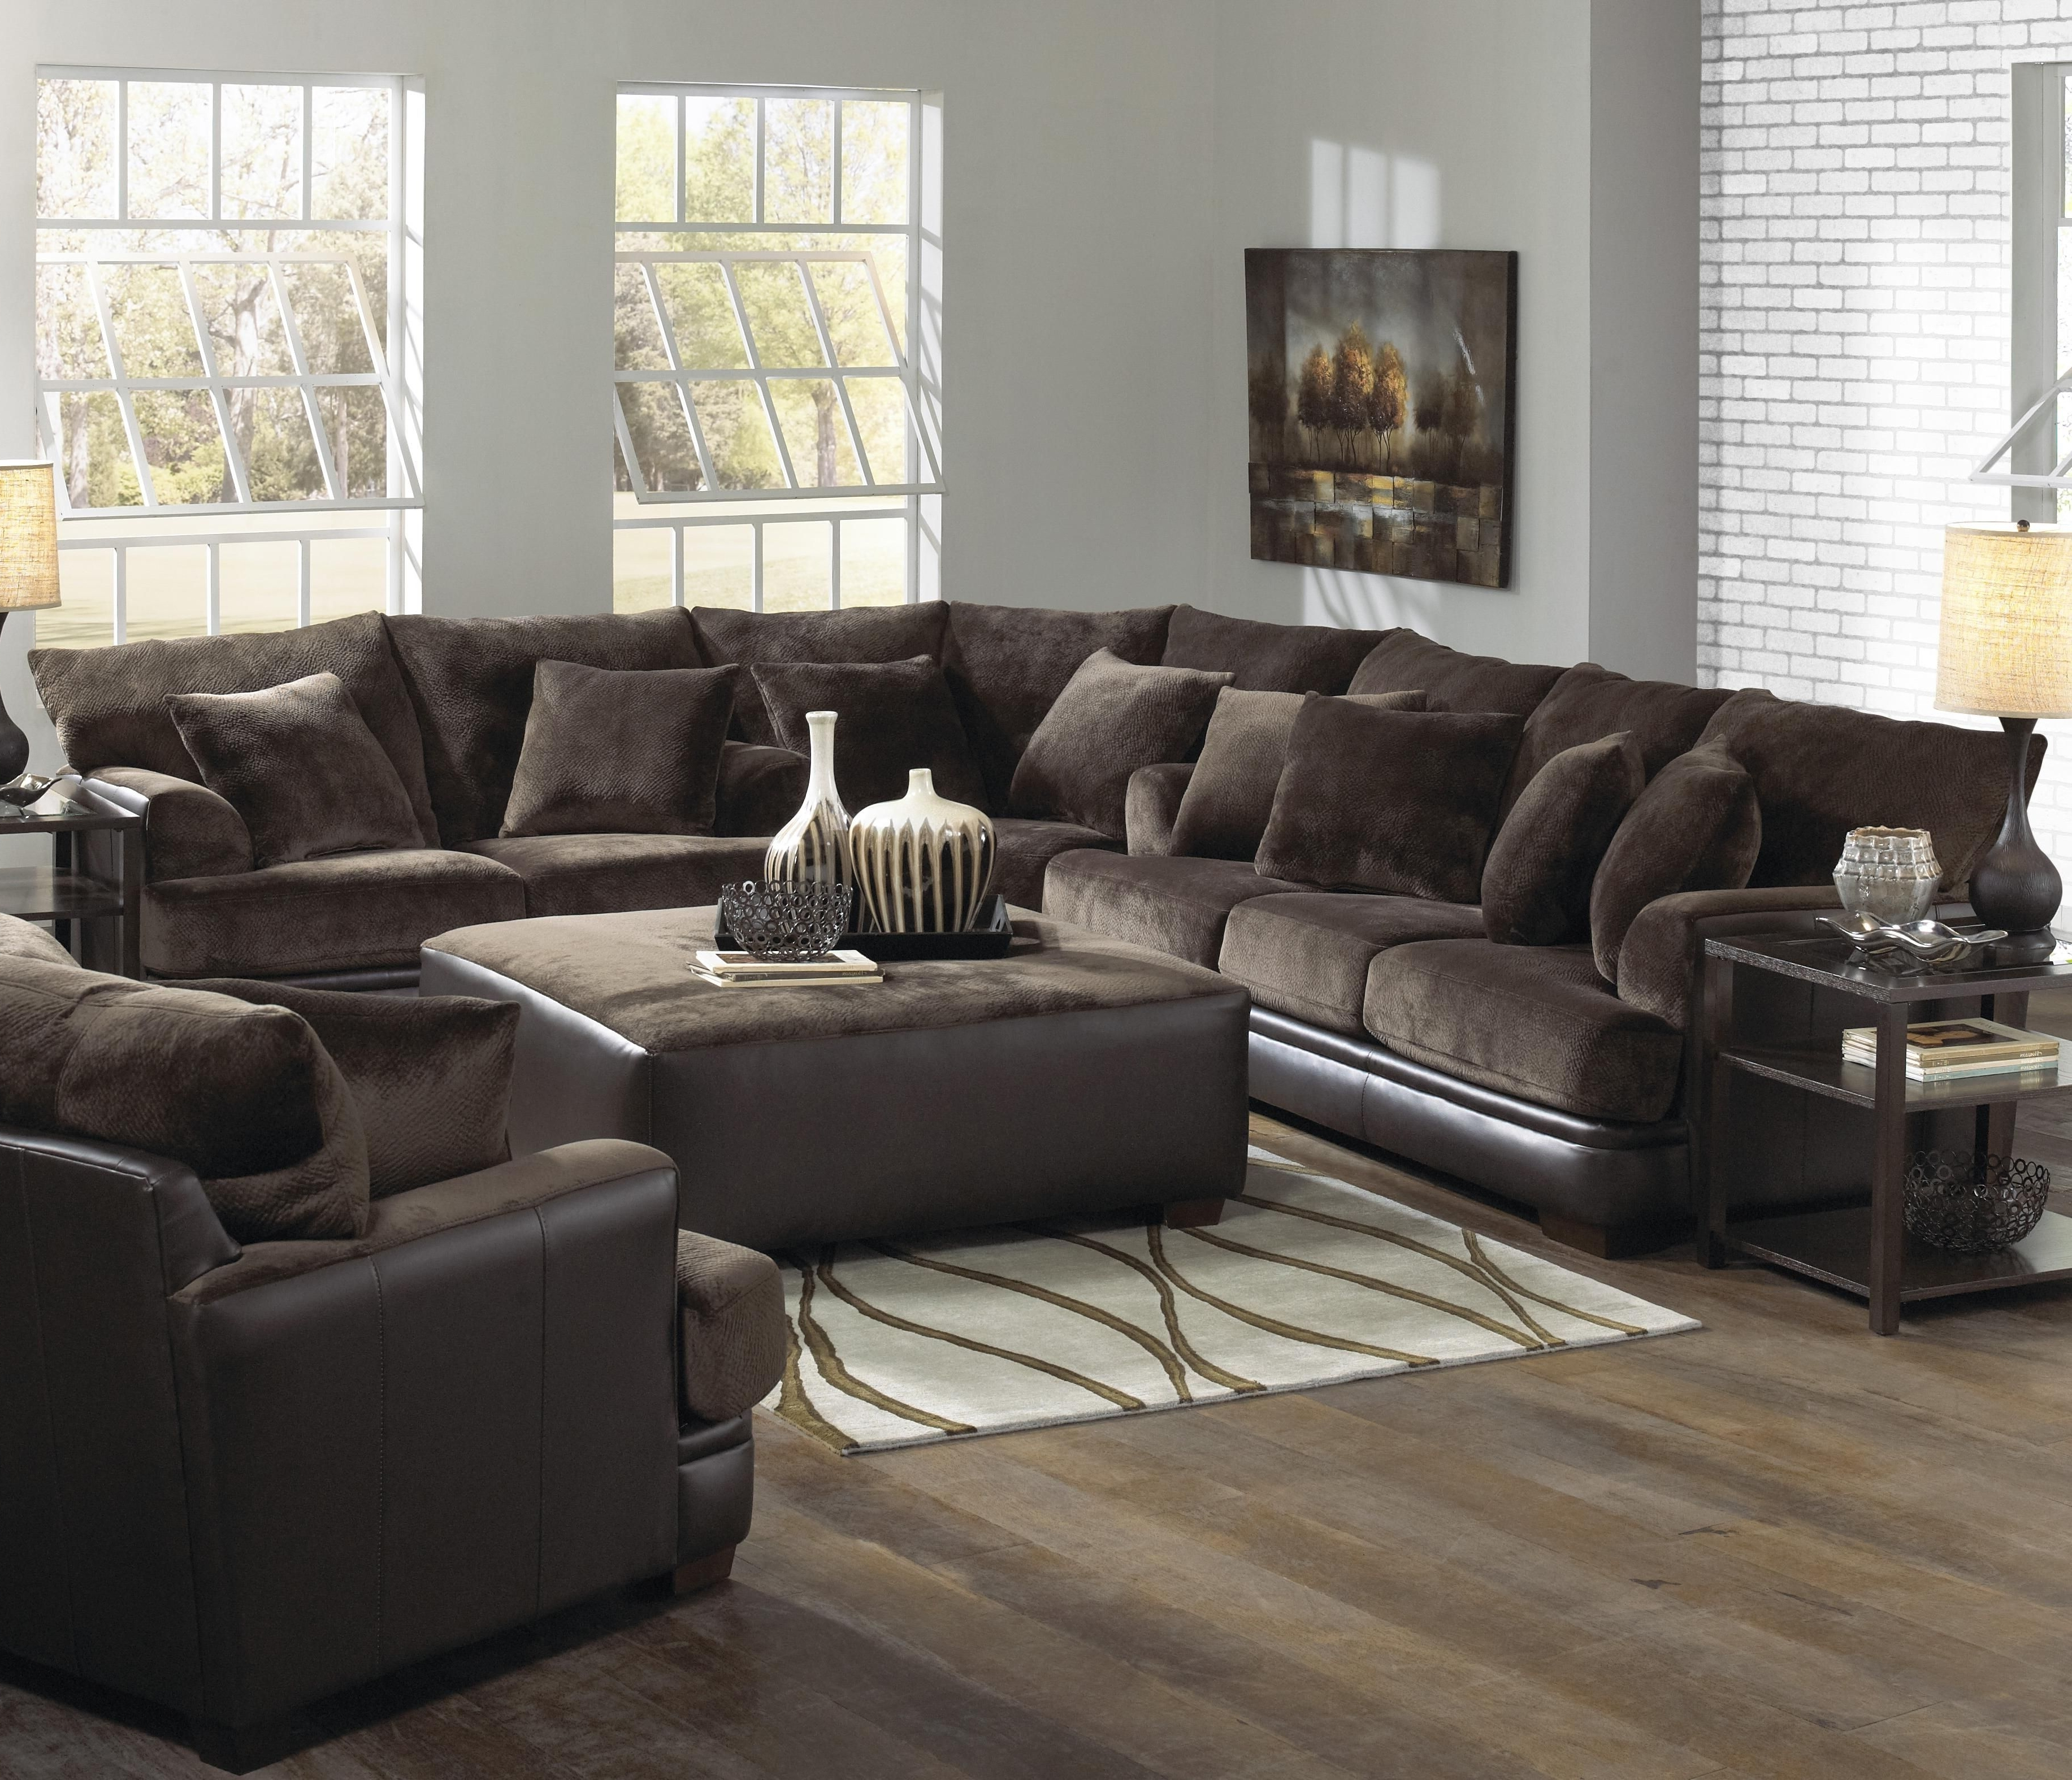 Trendy Barkley Large L Shaped Sectional Sofa With Right Side Loveseat With Huge Sofas (View 10 of 15)